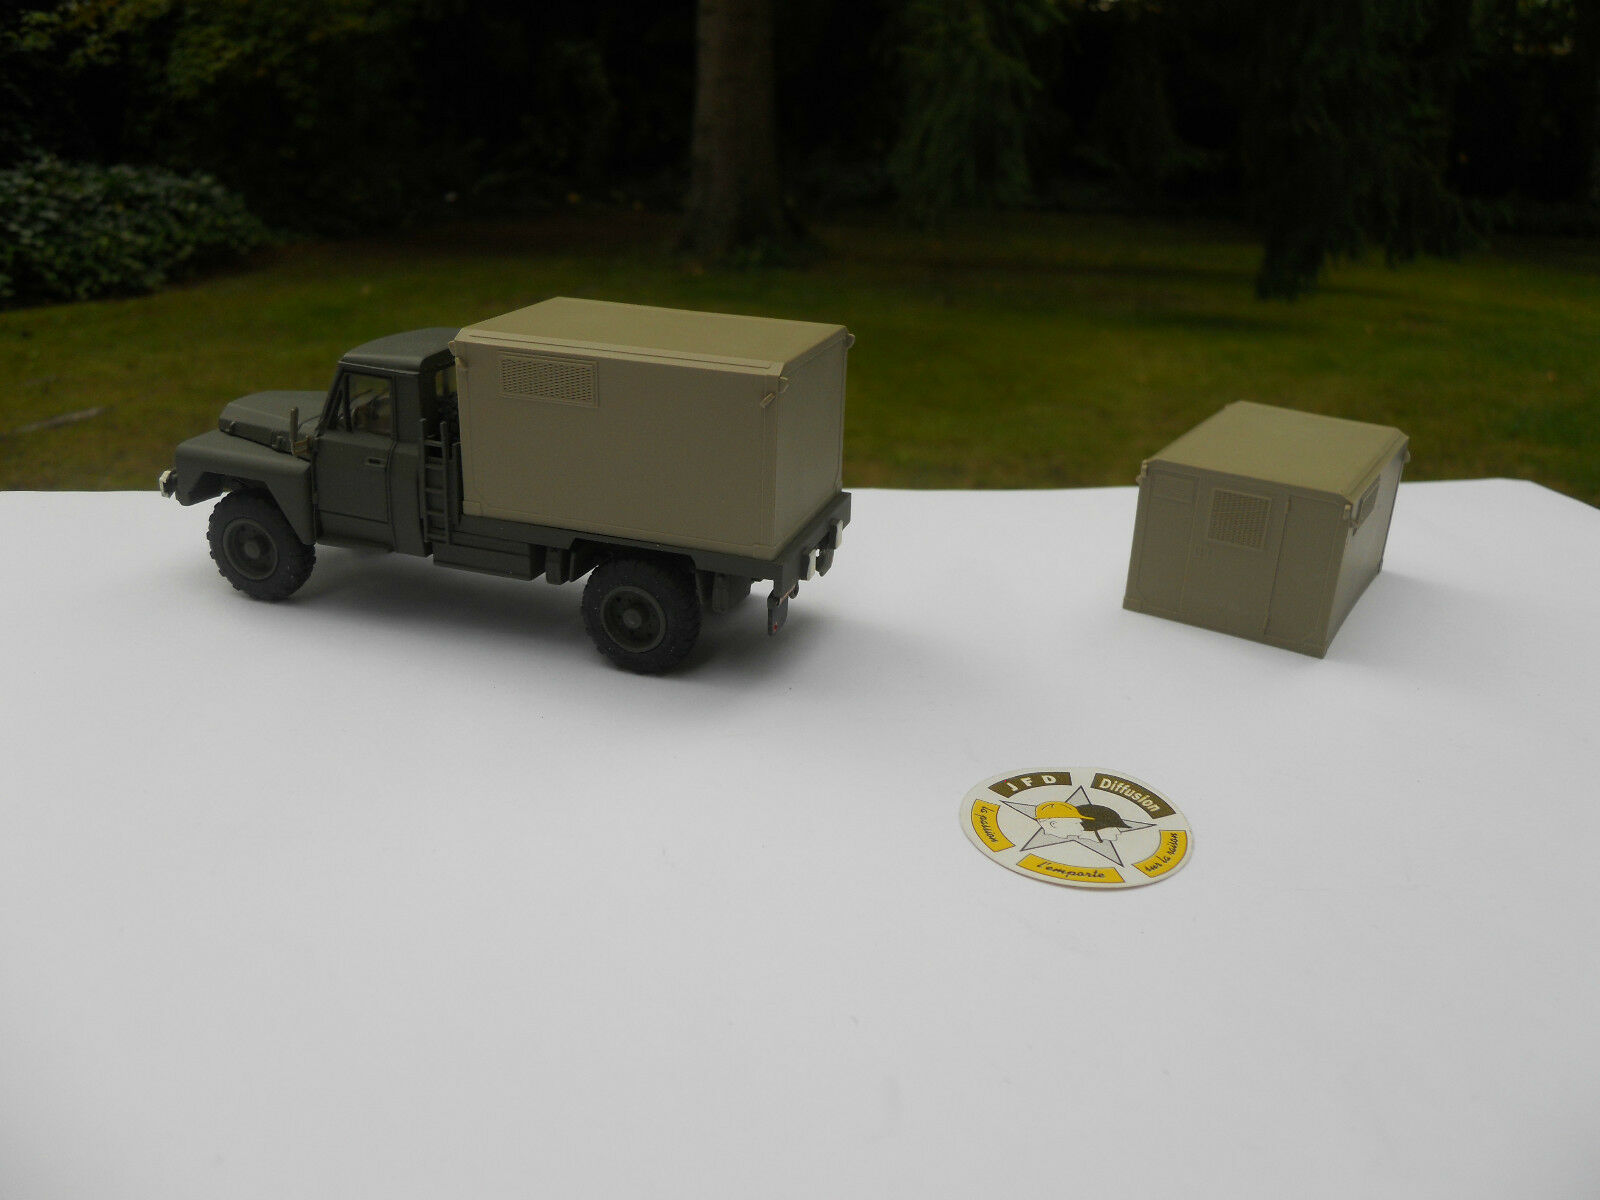 CEF REPLEX SHELTER SH 285 A 58 mm X 38 mm x 32 mm REPRODUCTION RESIN SAND